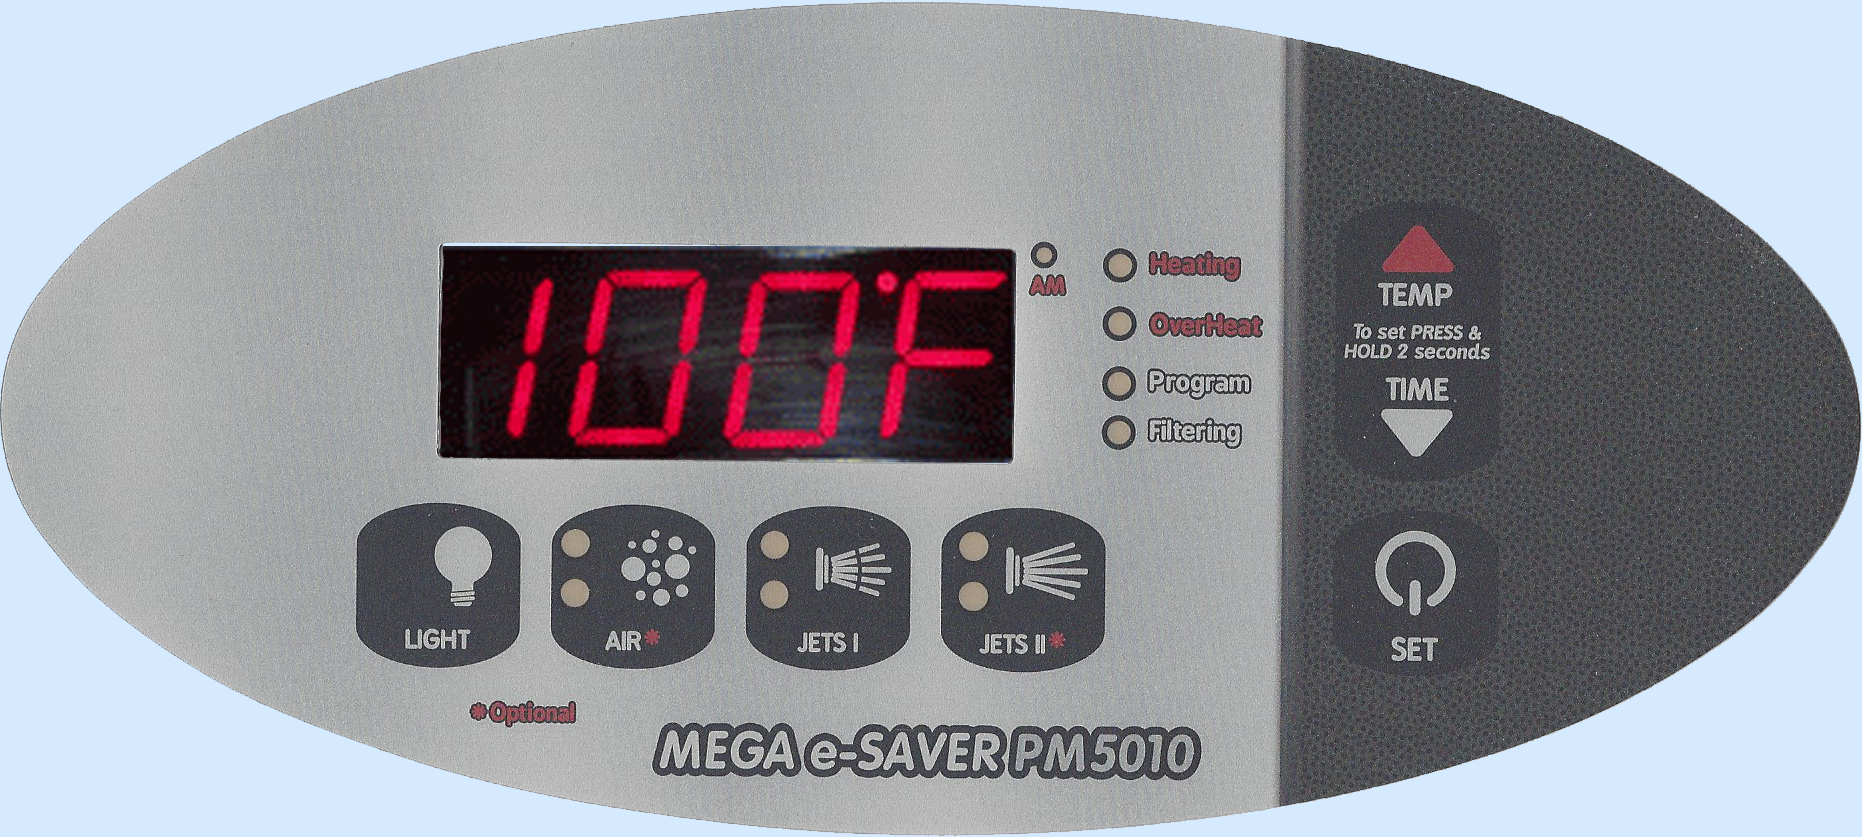 PM5010 Digital Spa Side Control